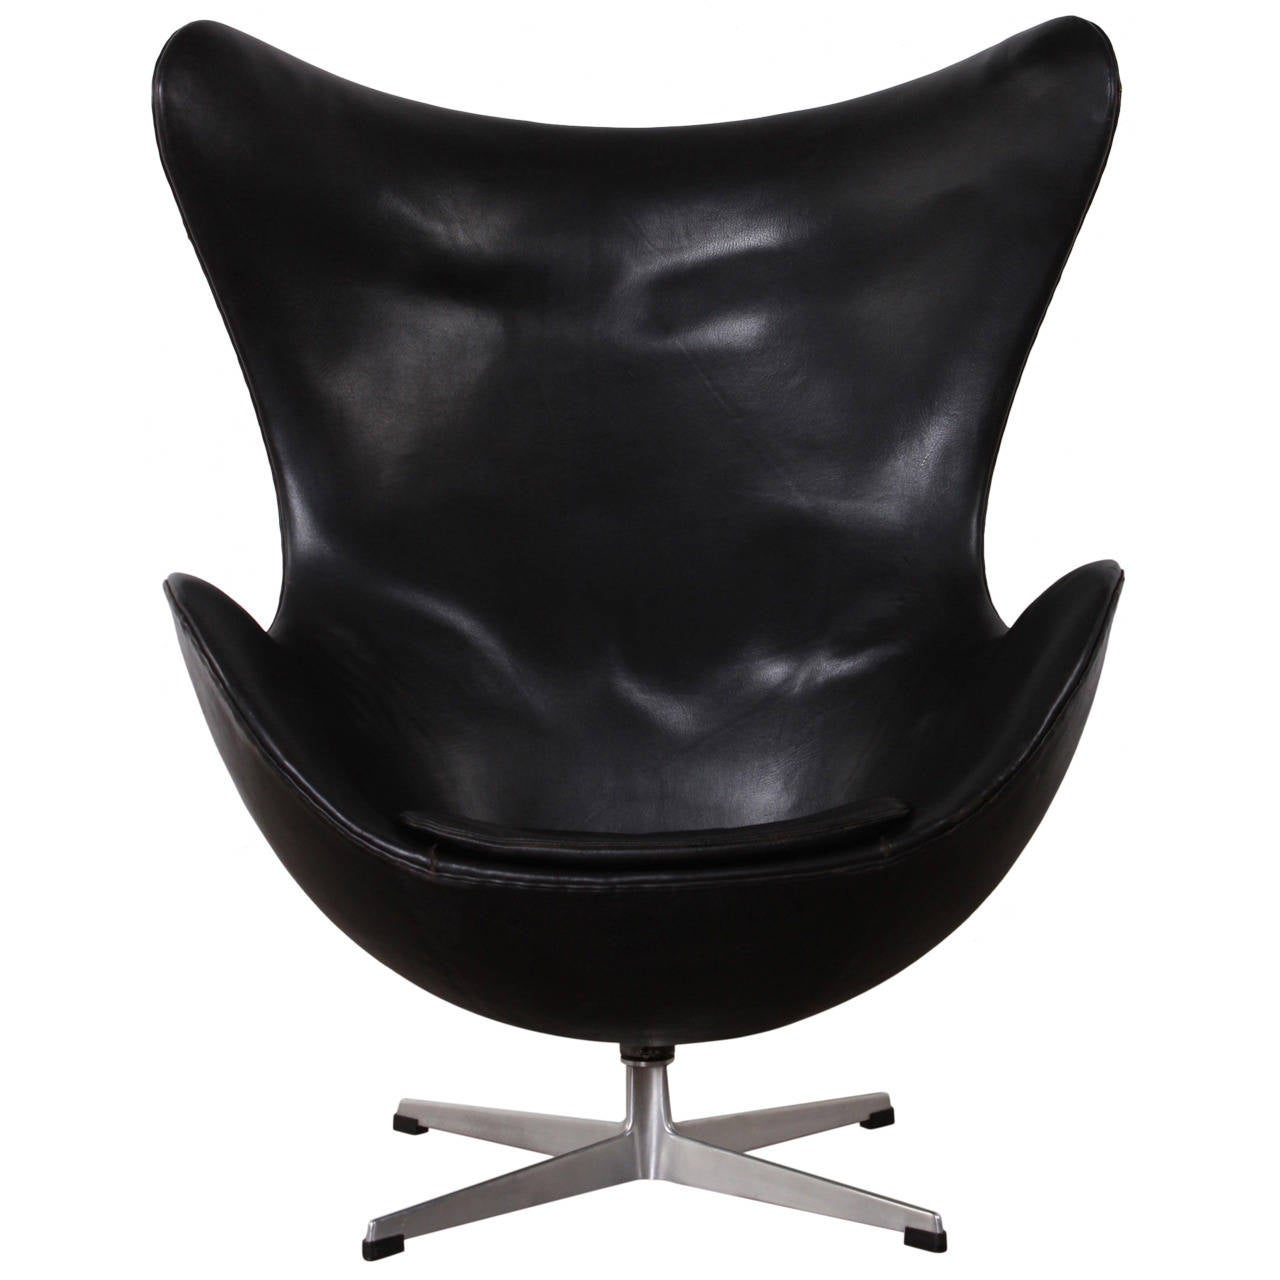 Egg chair by arne jacobsen in original leather at 1stdibs for Egg chair original